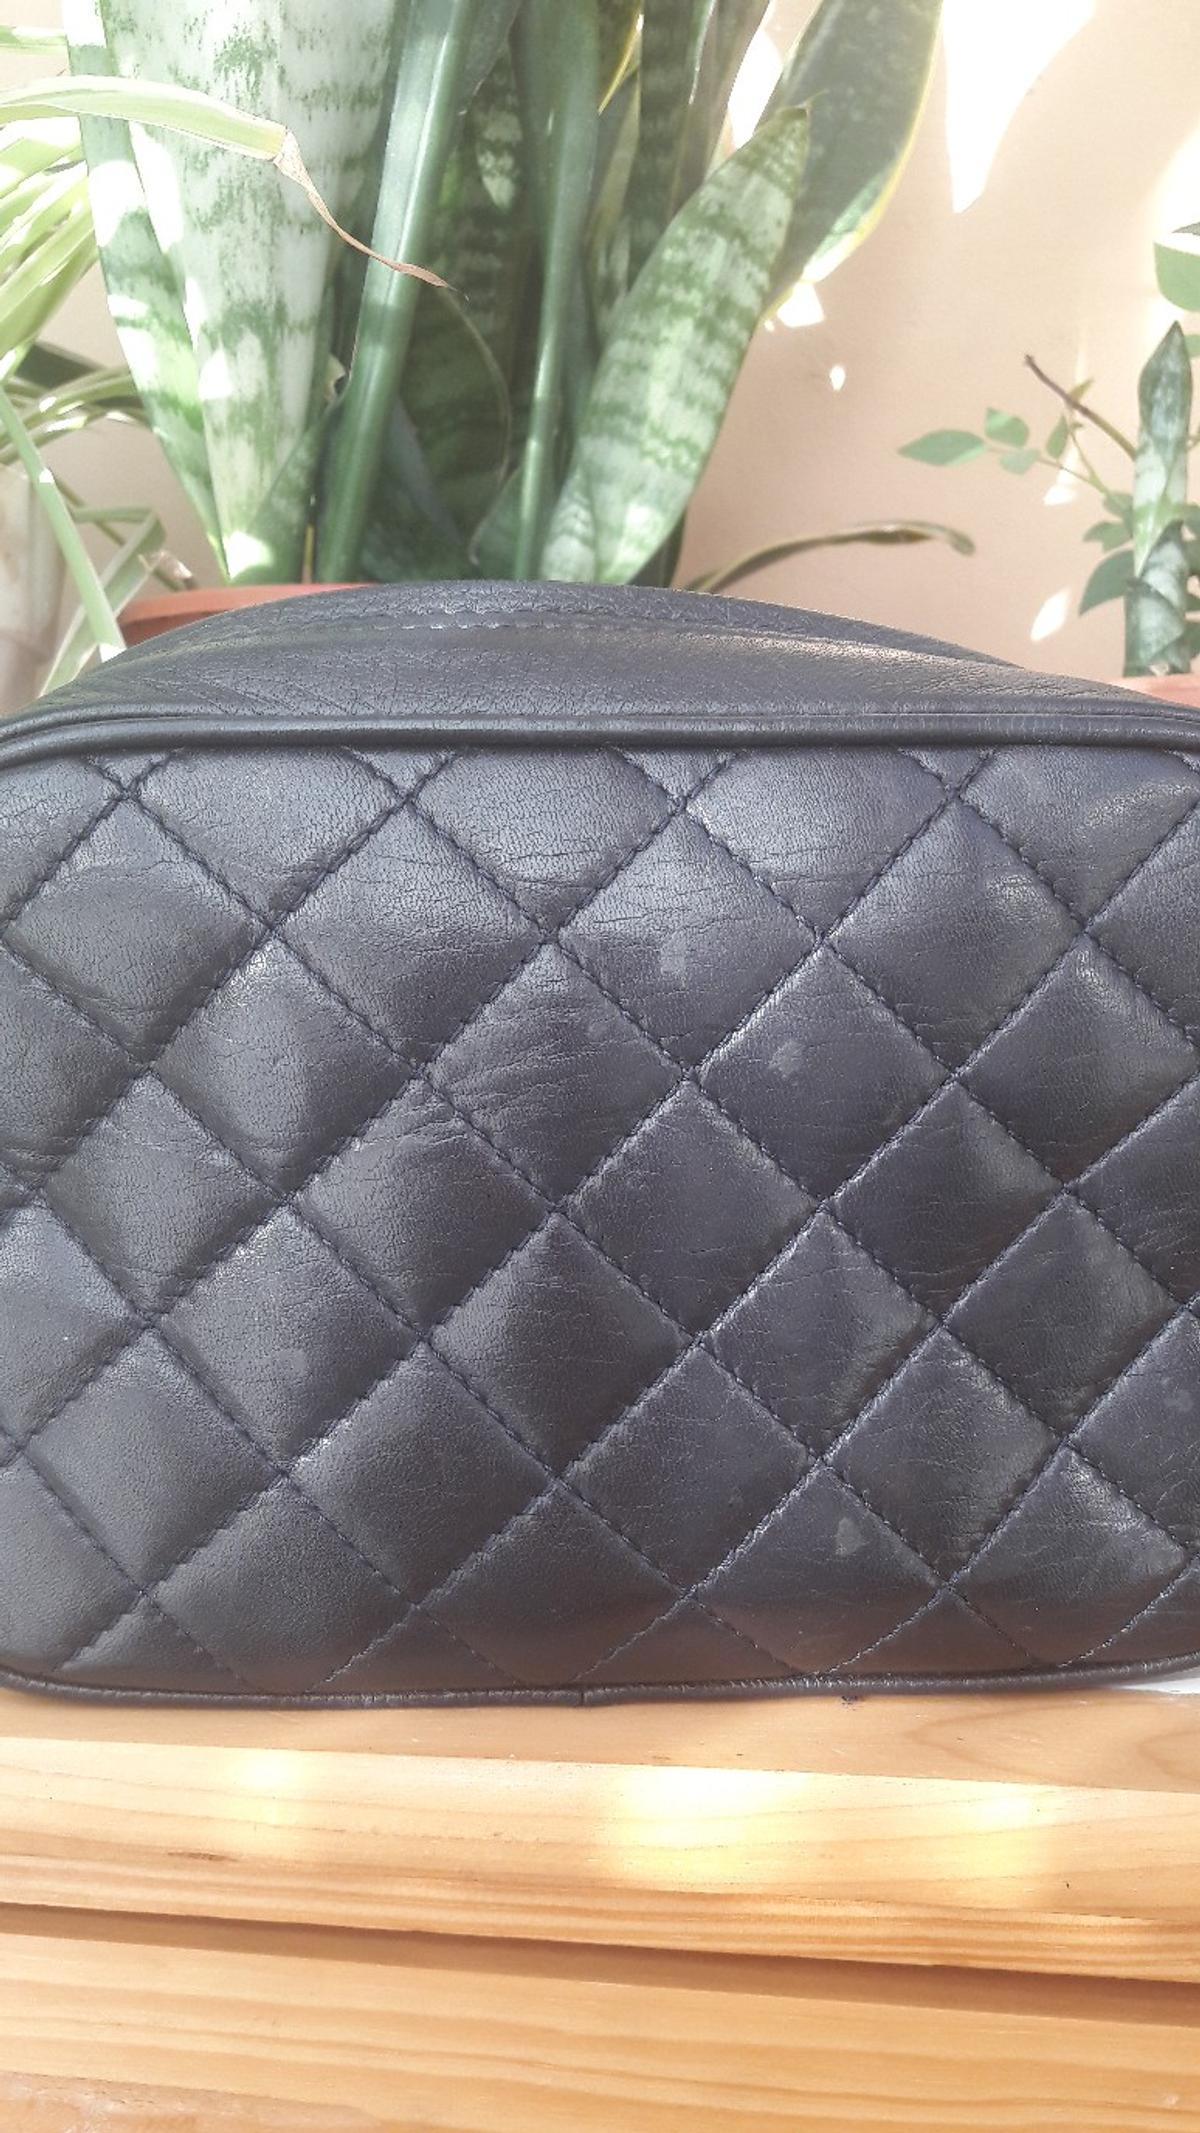 Borse Chanel Vintage Usate.Borsa Chanel In 14100 Asti For 400 00 For Sale Shpock